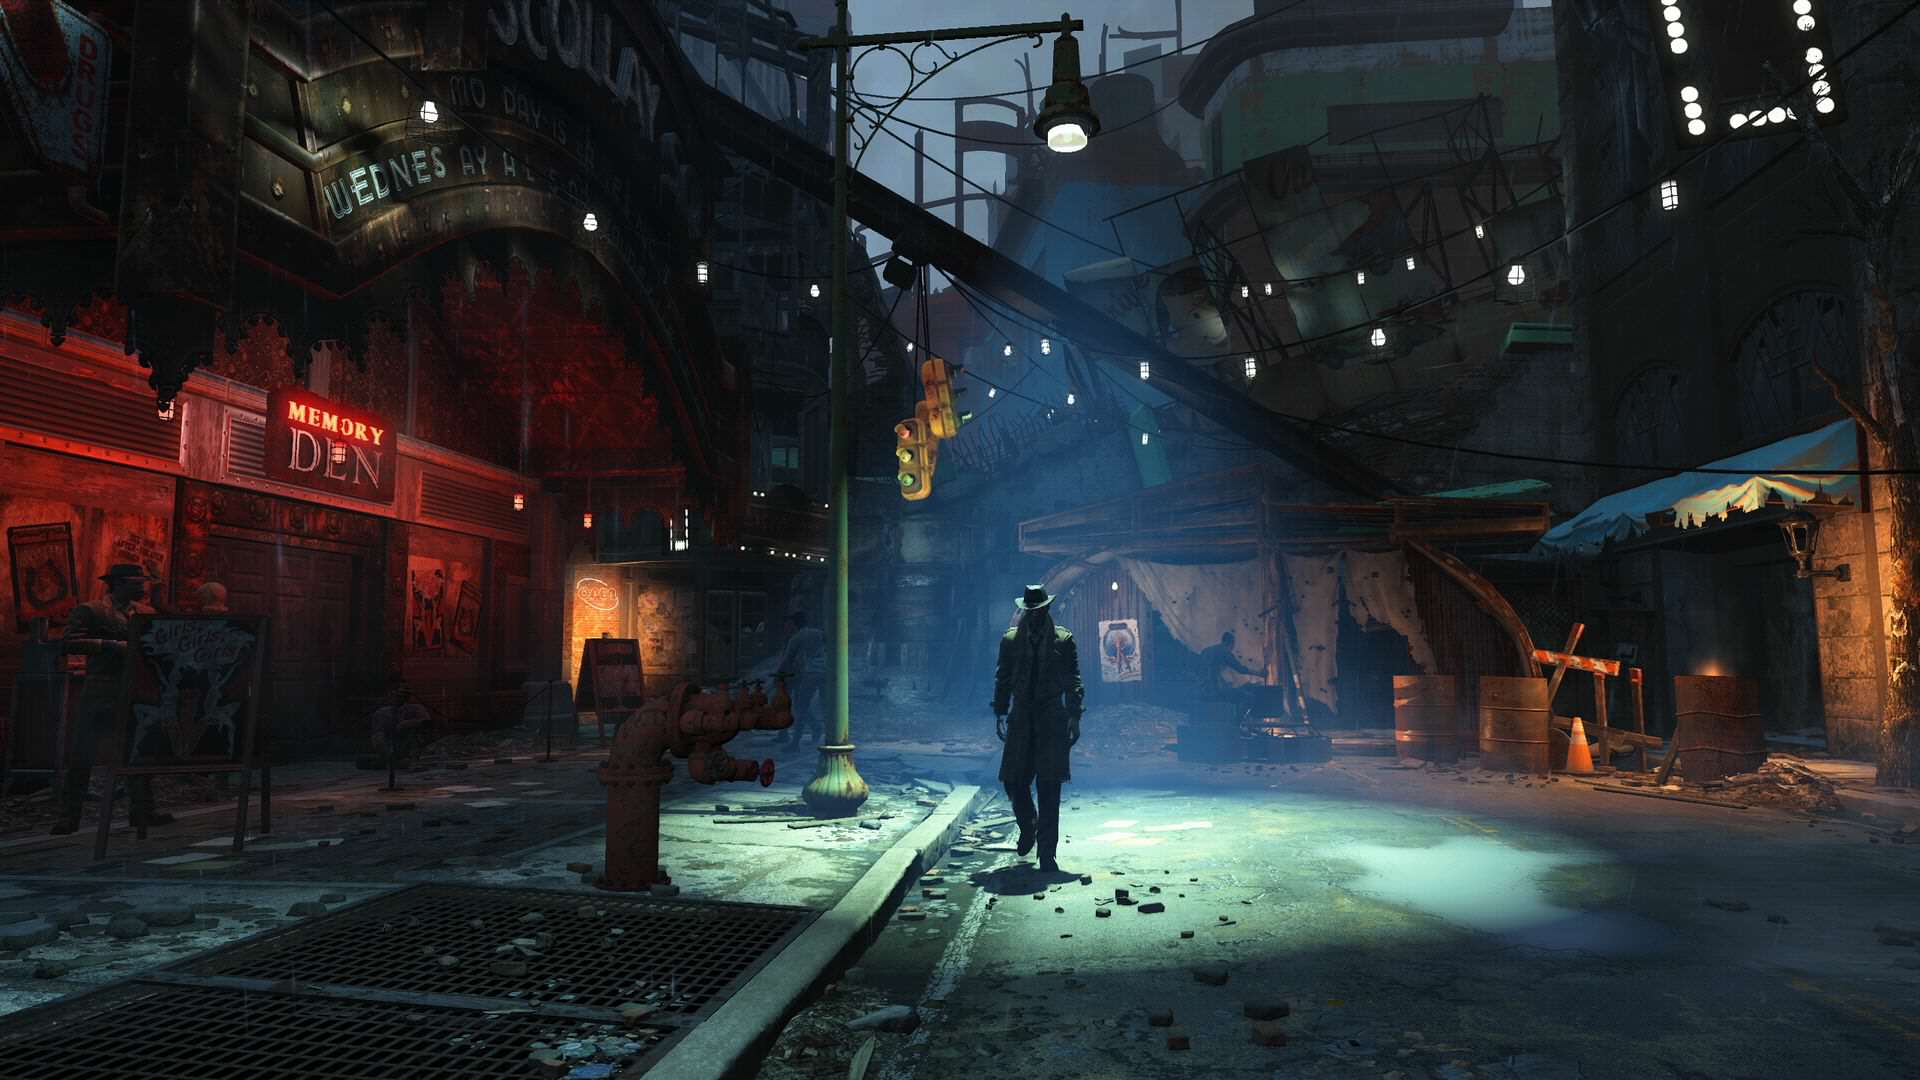 cats sharks and ufos 6 super secret locations you need to find in fallout 4 let s go 725839 One Mans Mission To Document Every Secret In Fallout 4